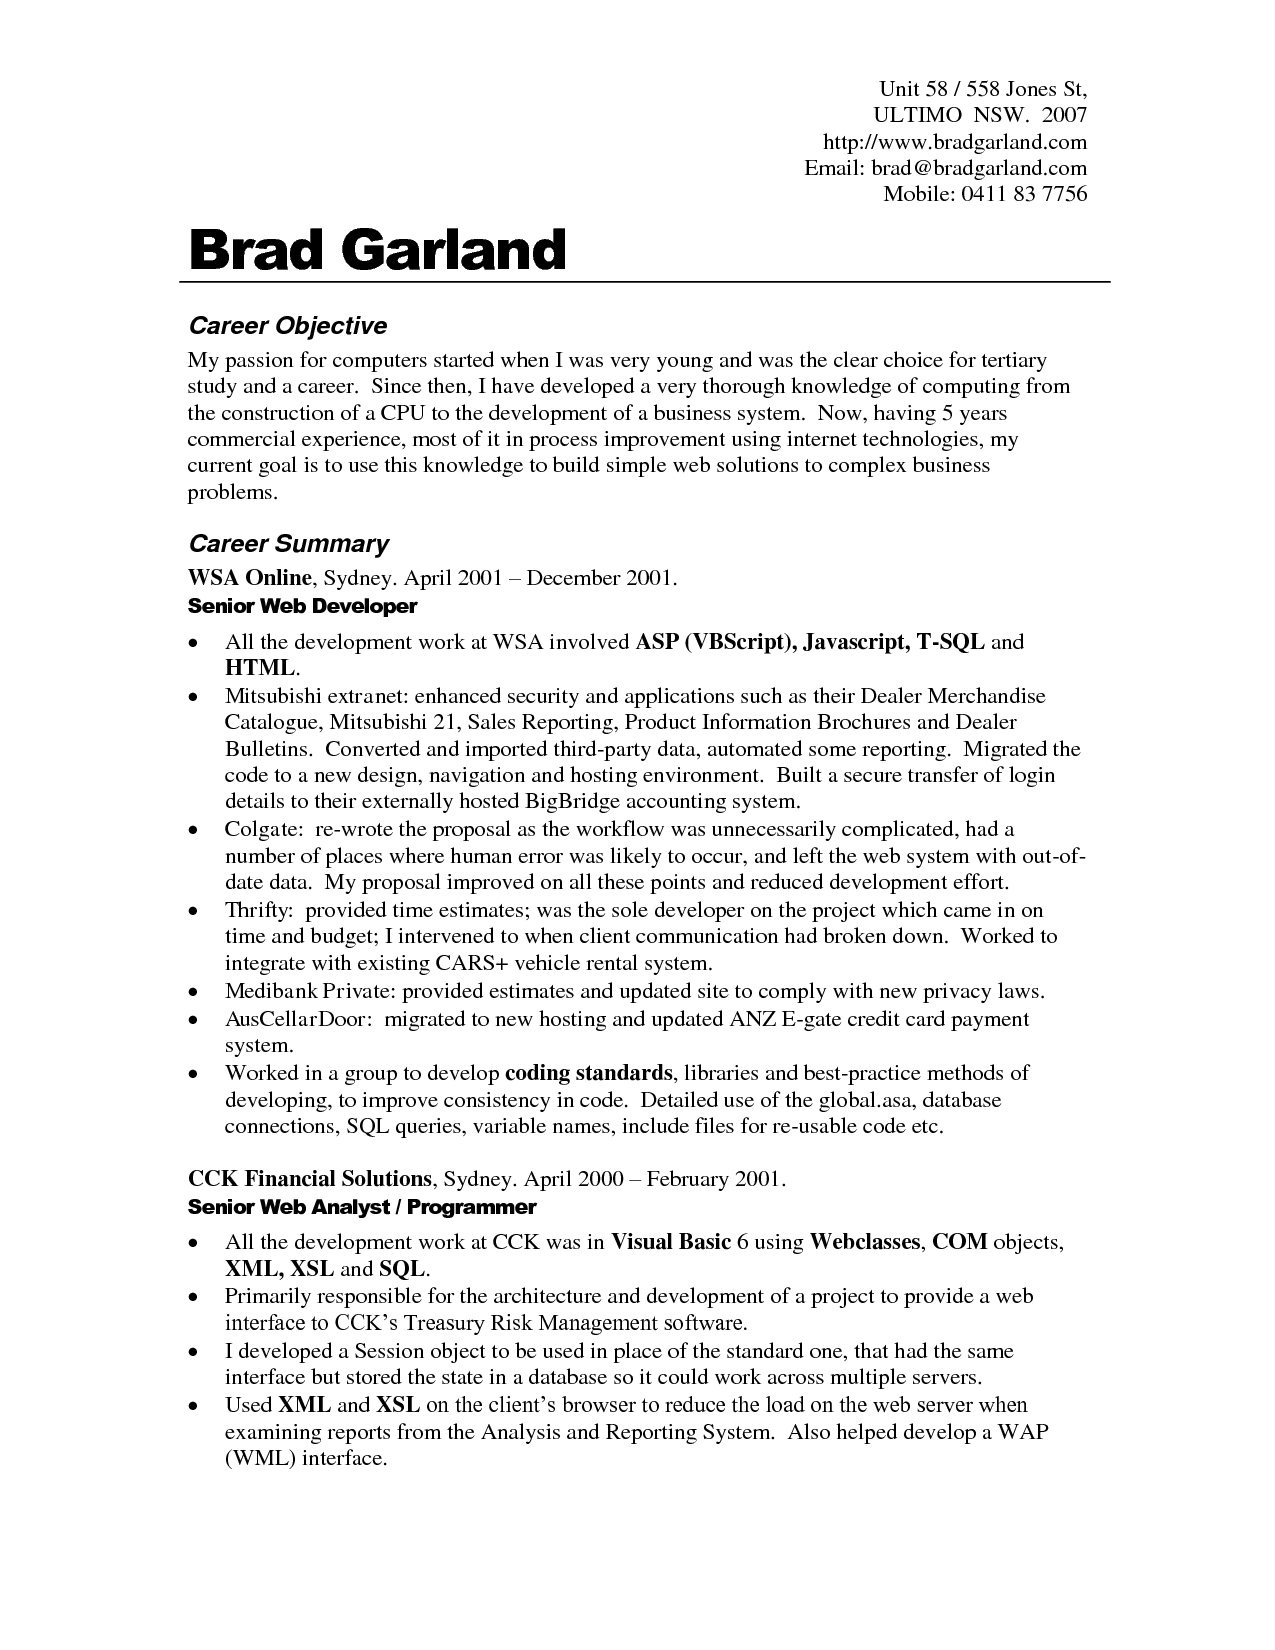 Resume Examples Career Goals best resume objective entry level     Pinterest Entry Level Banking Resume we provide as reference to make correct and good  quality Resume